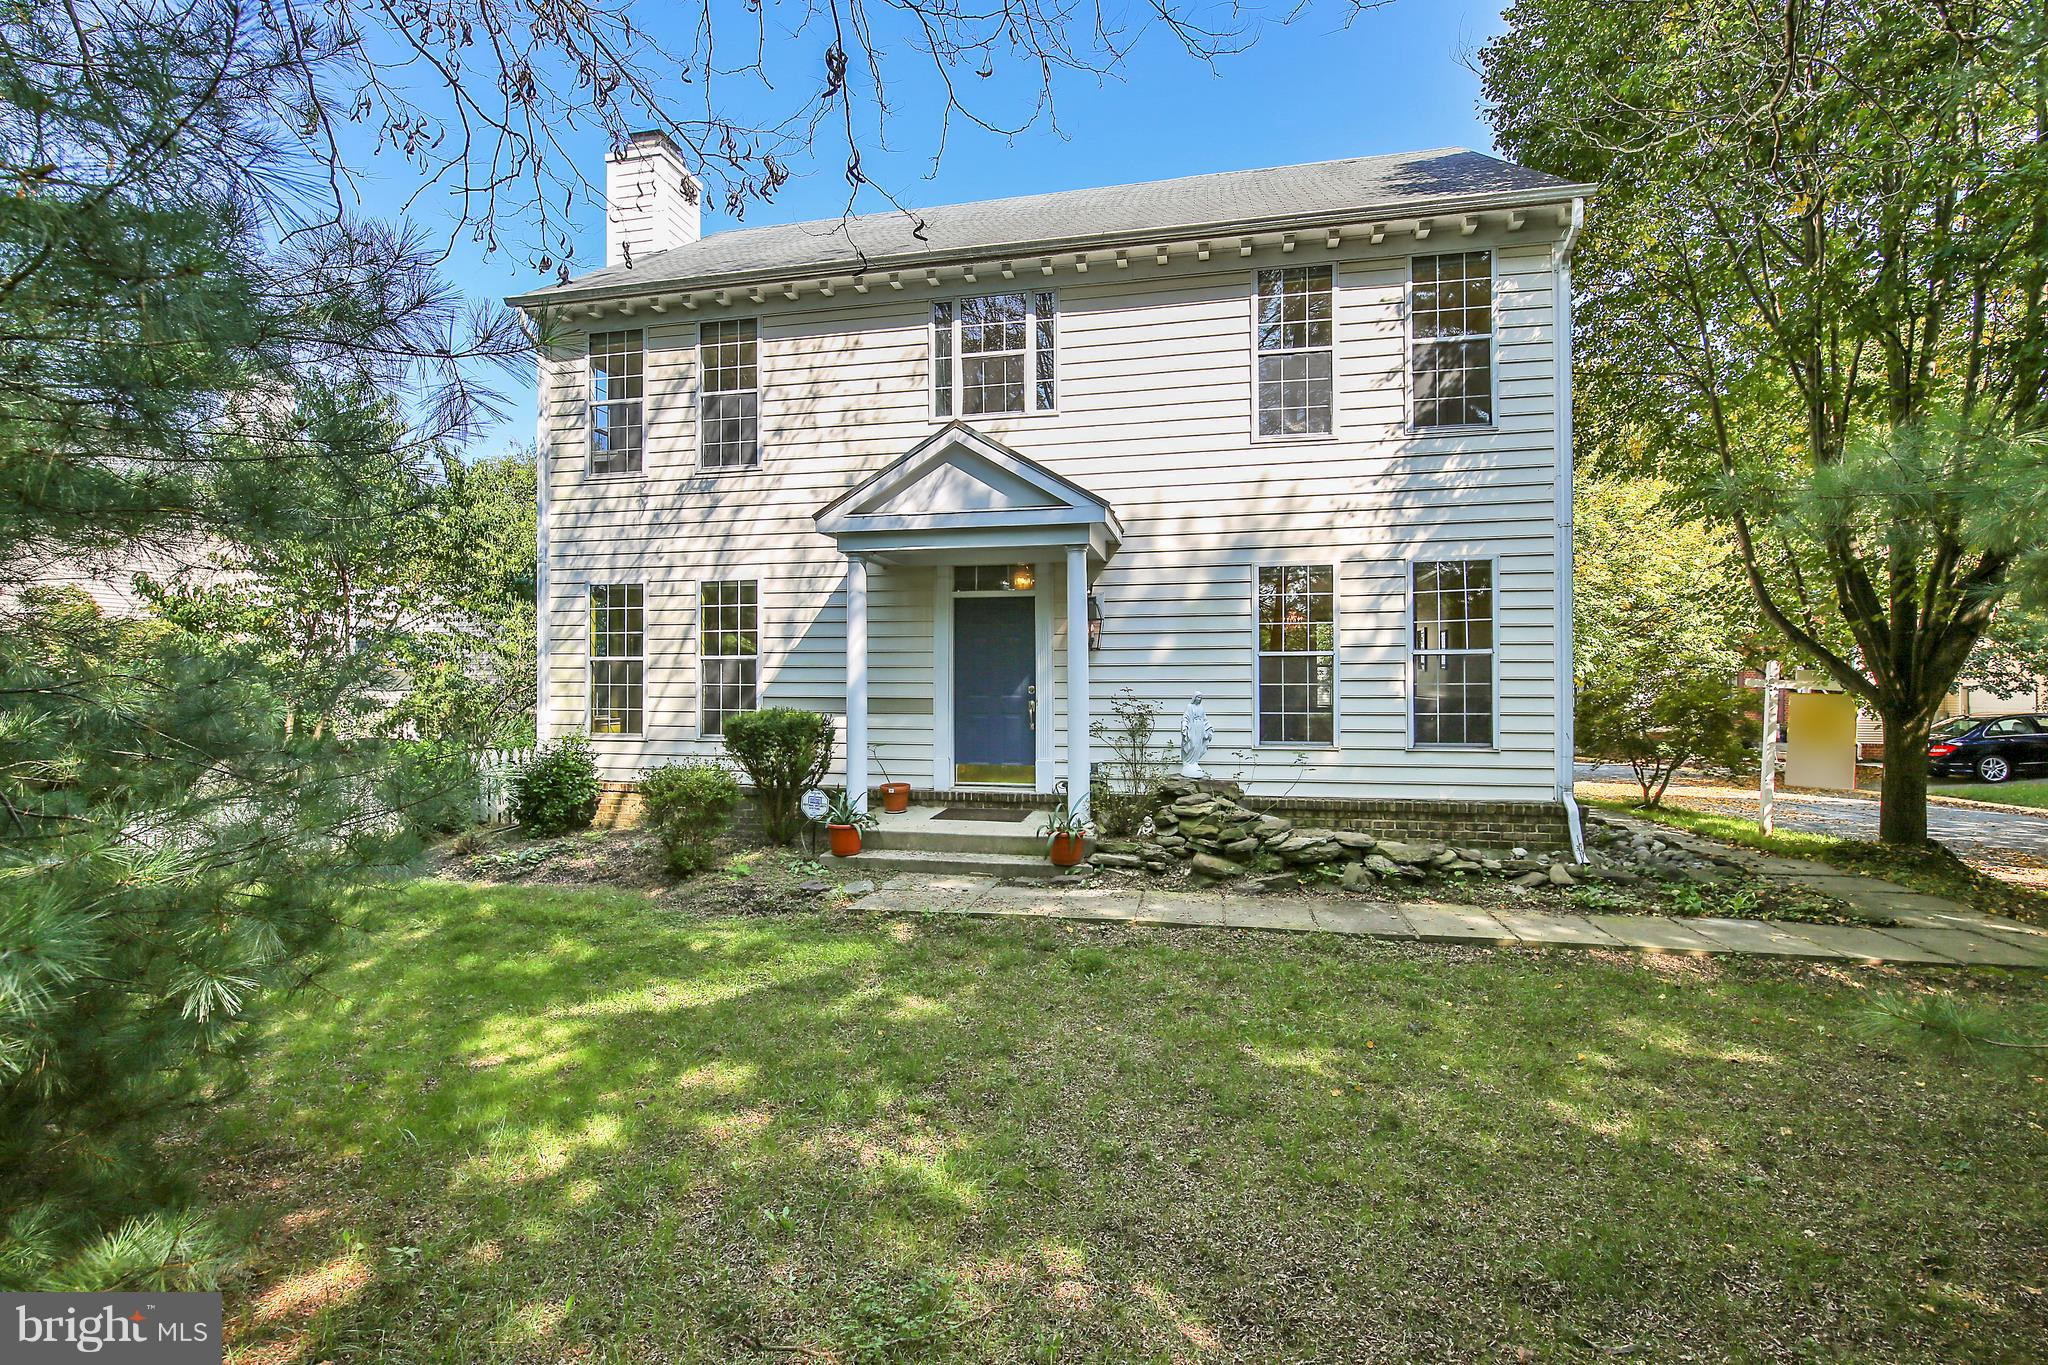 9707 MEGGS POINT PLACE, MONTGOMERY VILLAGE, MD 20886